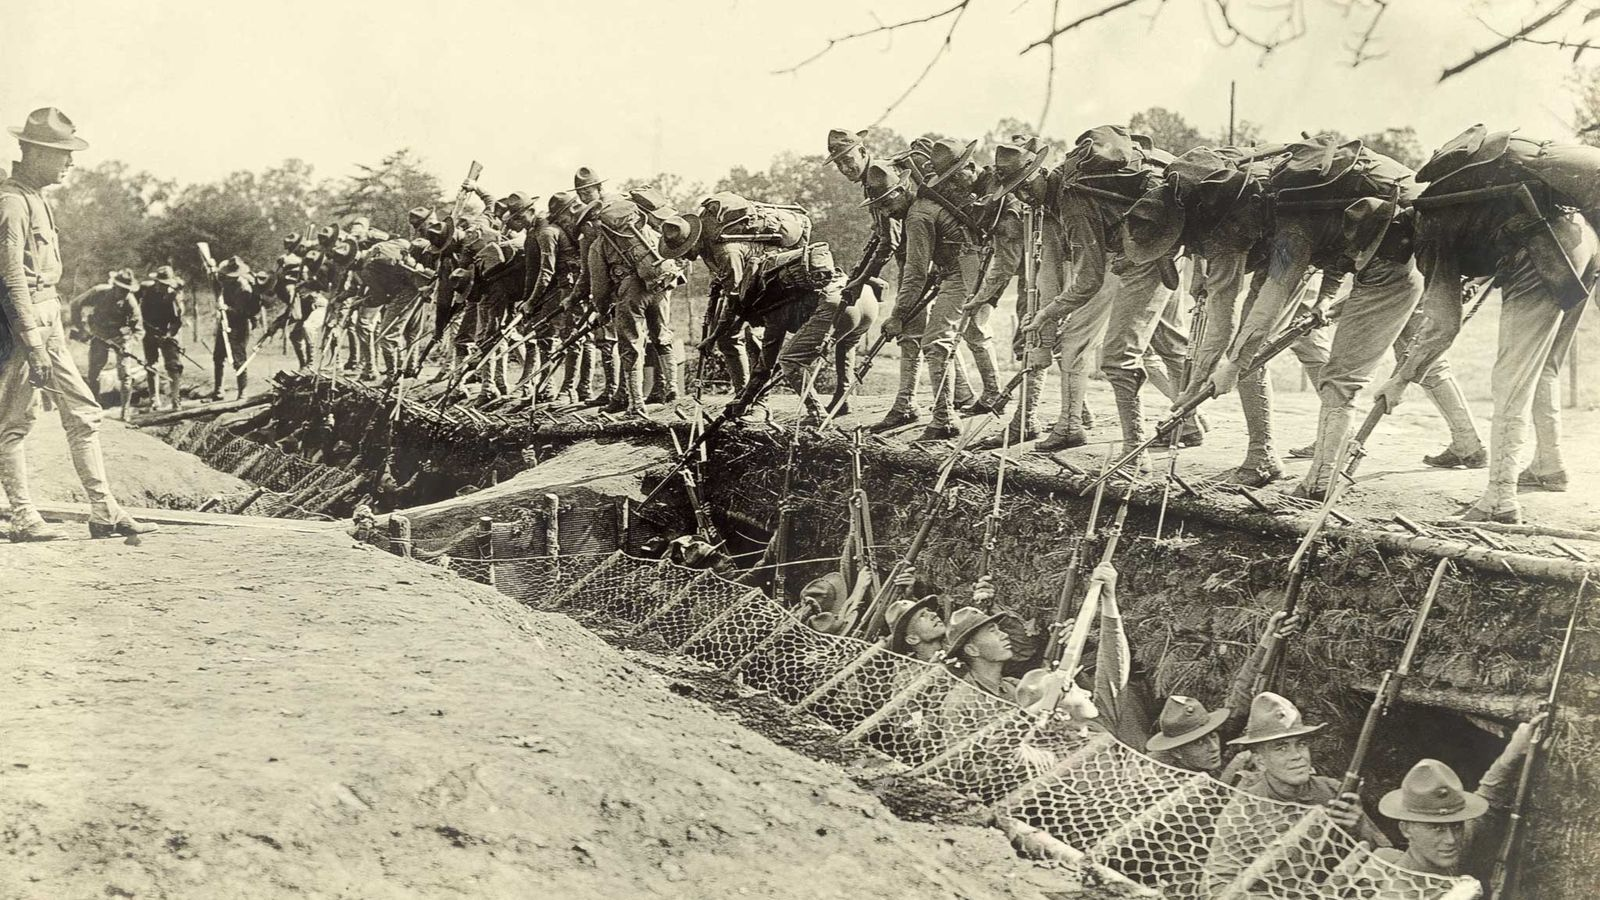 Training at Quantico, Virginia before deployment, United States Marines practice attacking and defending trenches.